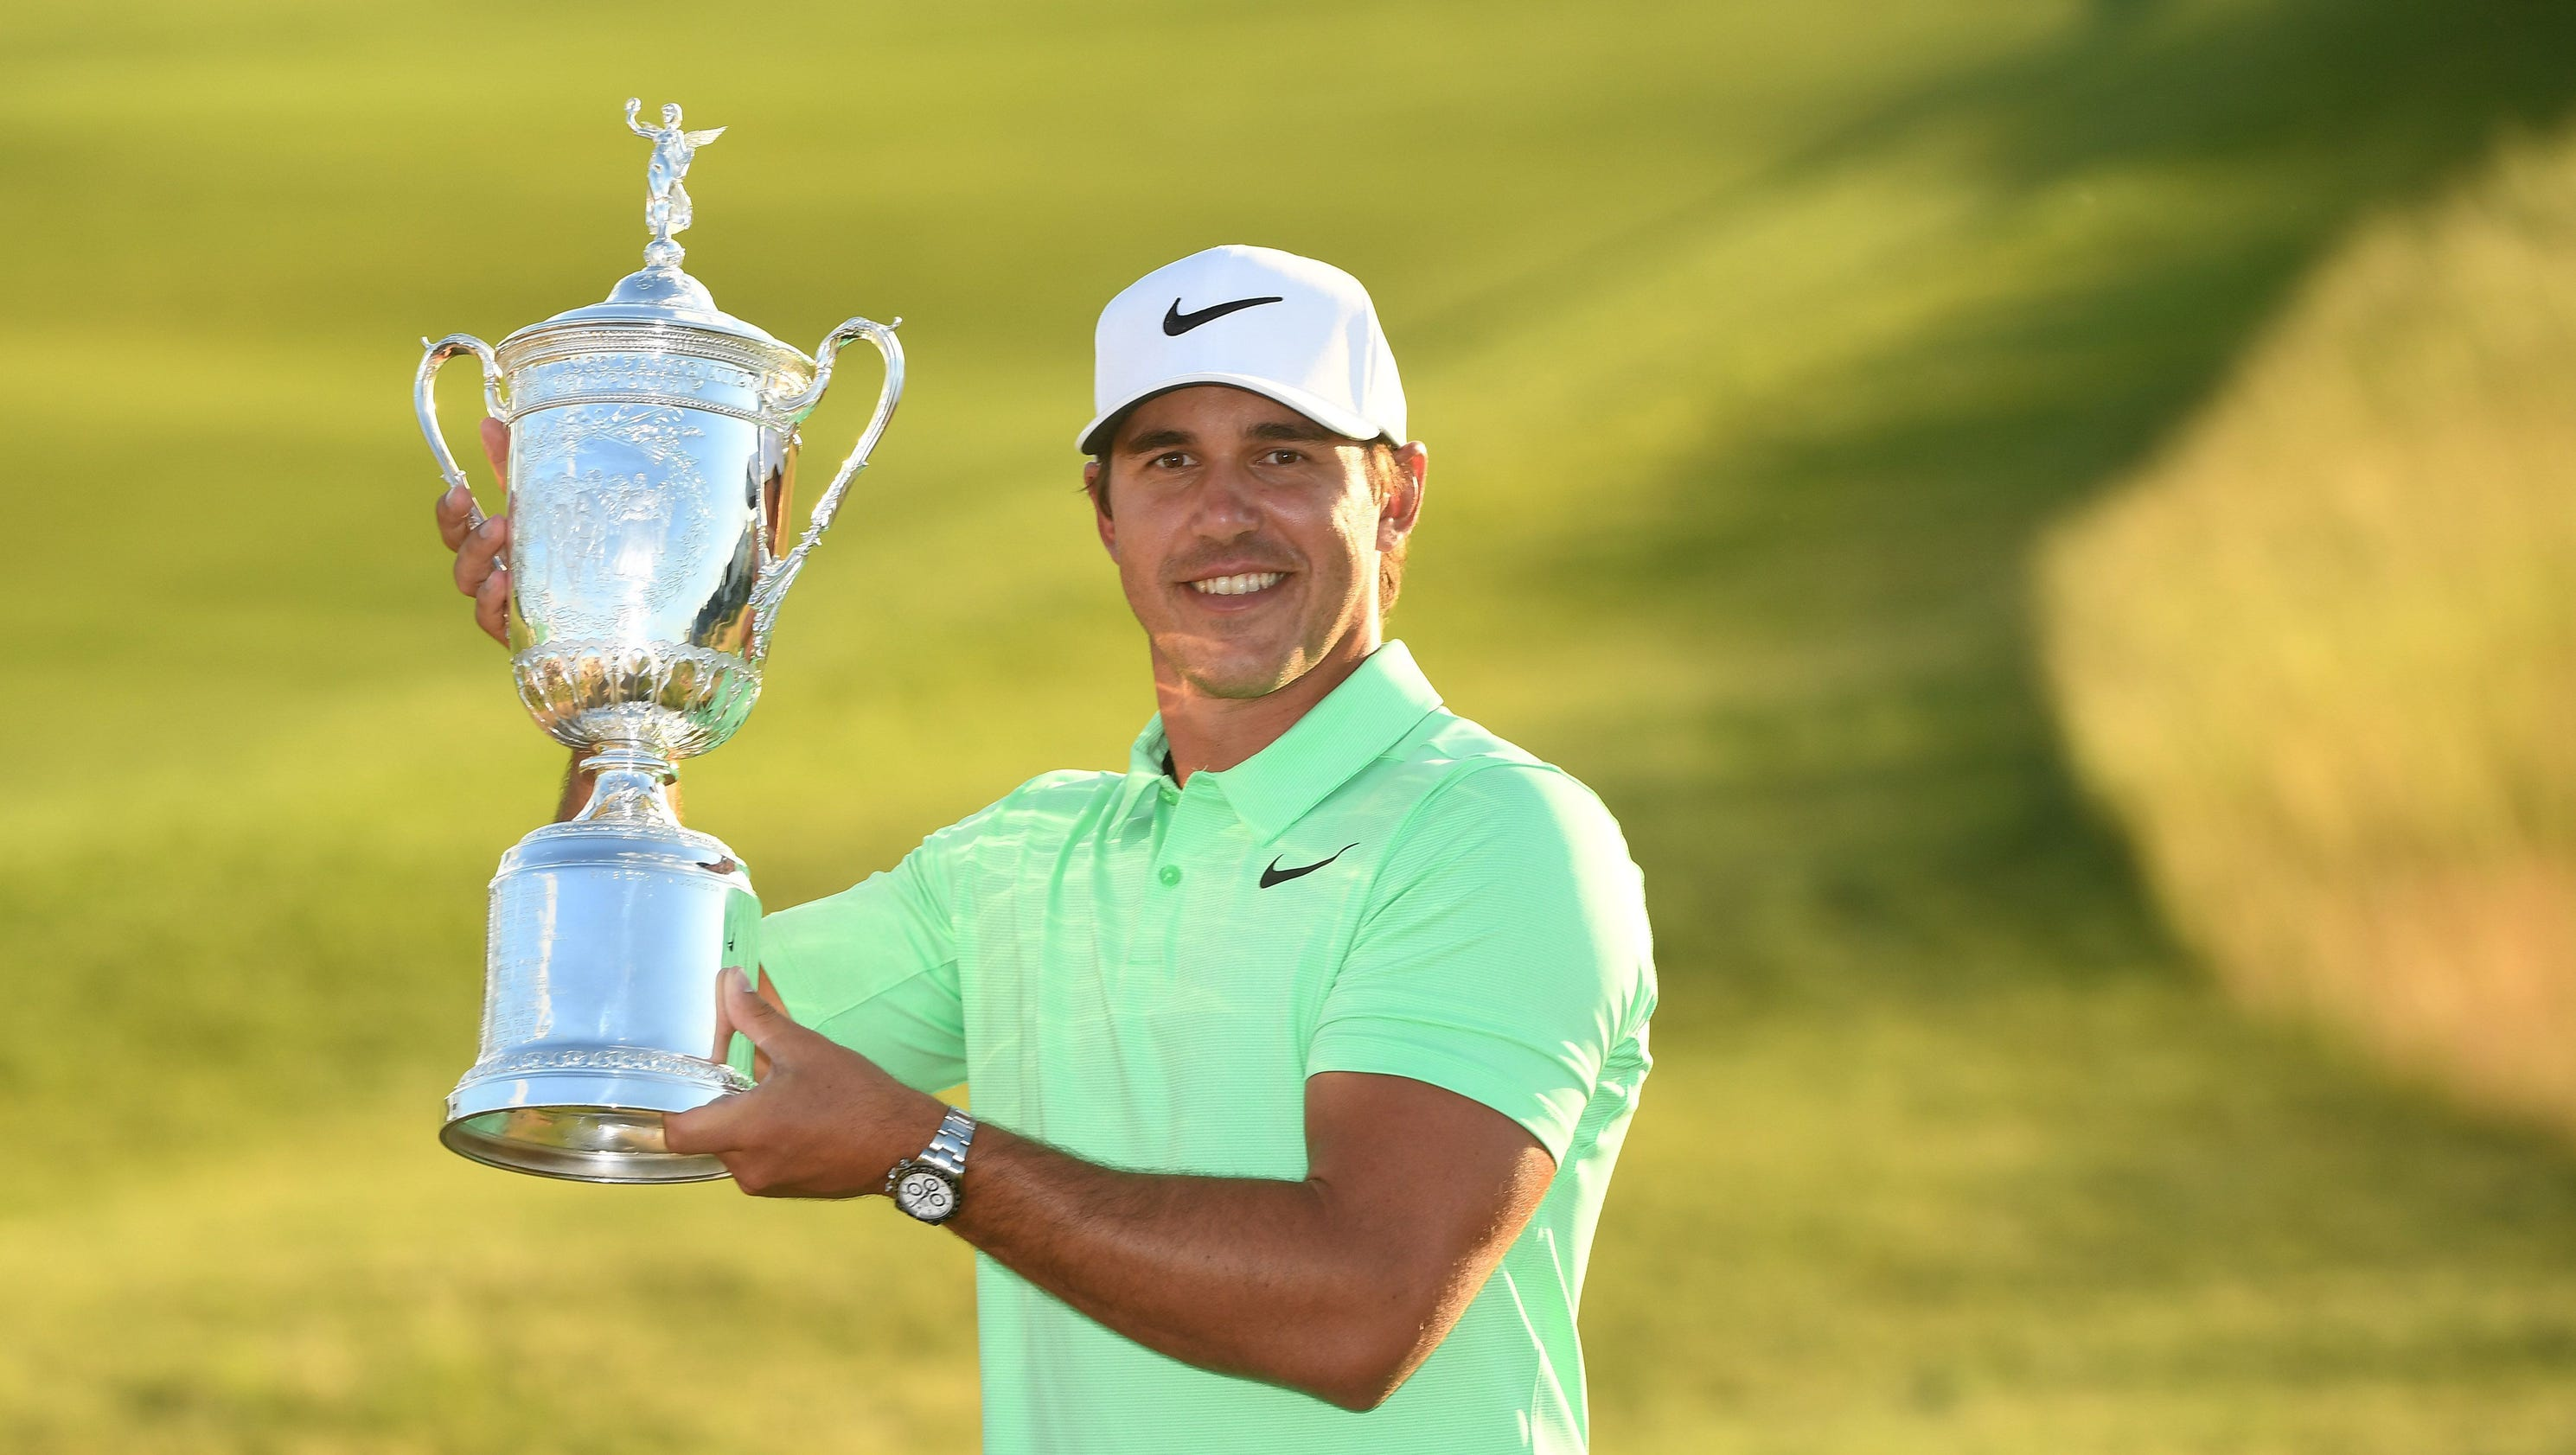 Ryder Cup gave Brooks Koepka confidence to withstand pressure